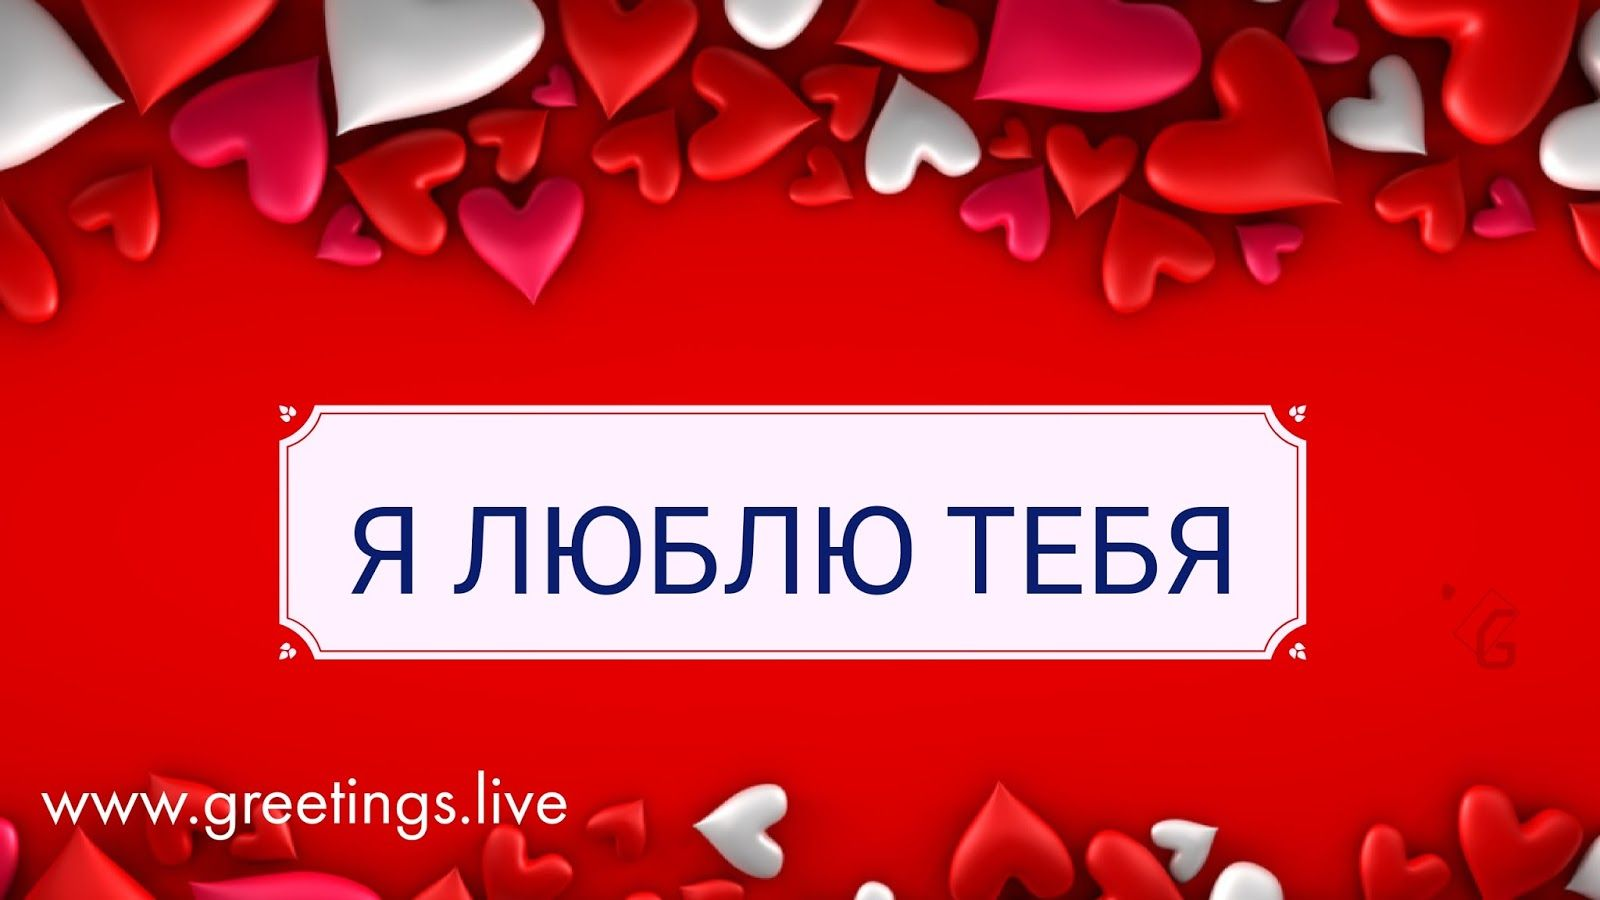 I Love You In Russian Language Greetingsve Pinterest